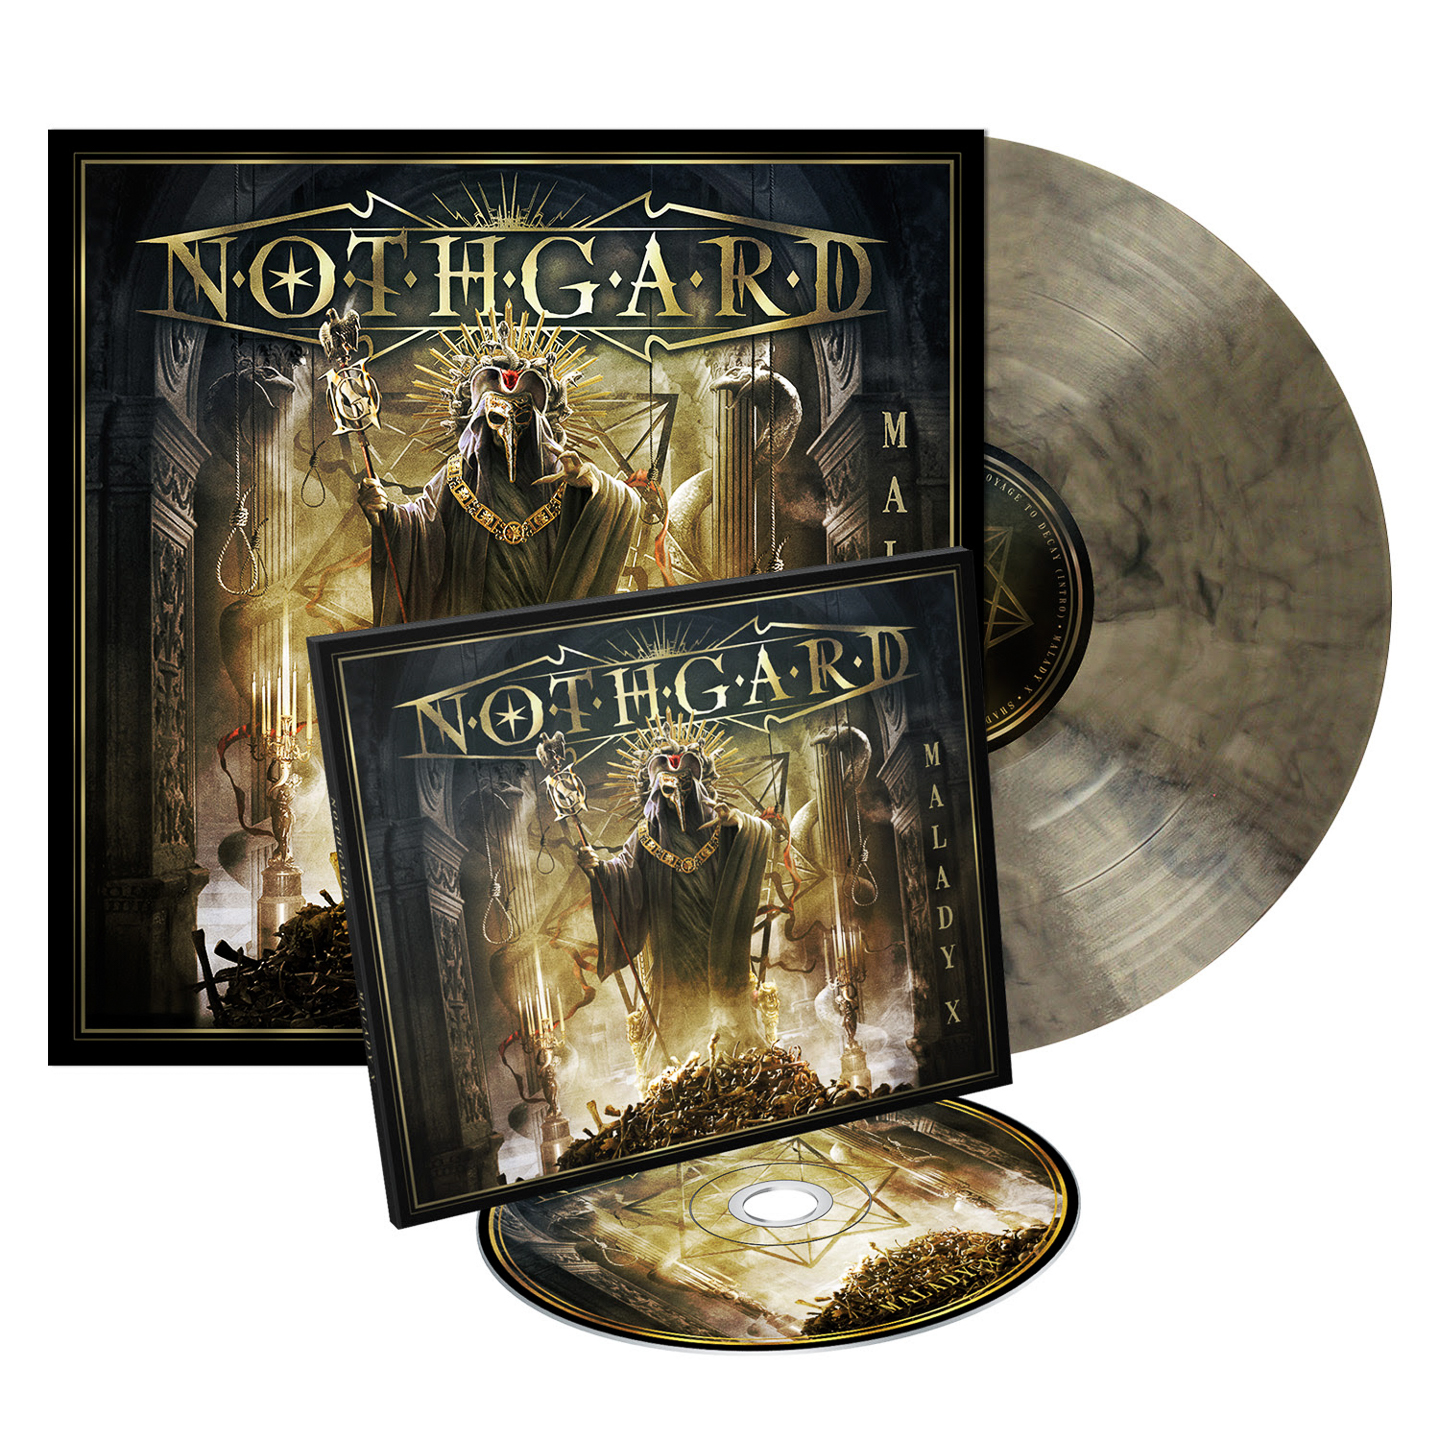 nothgard album cover